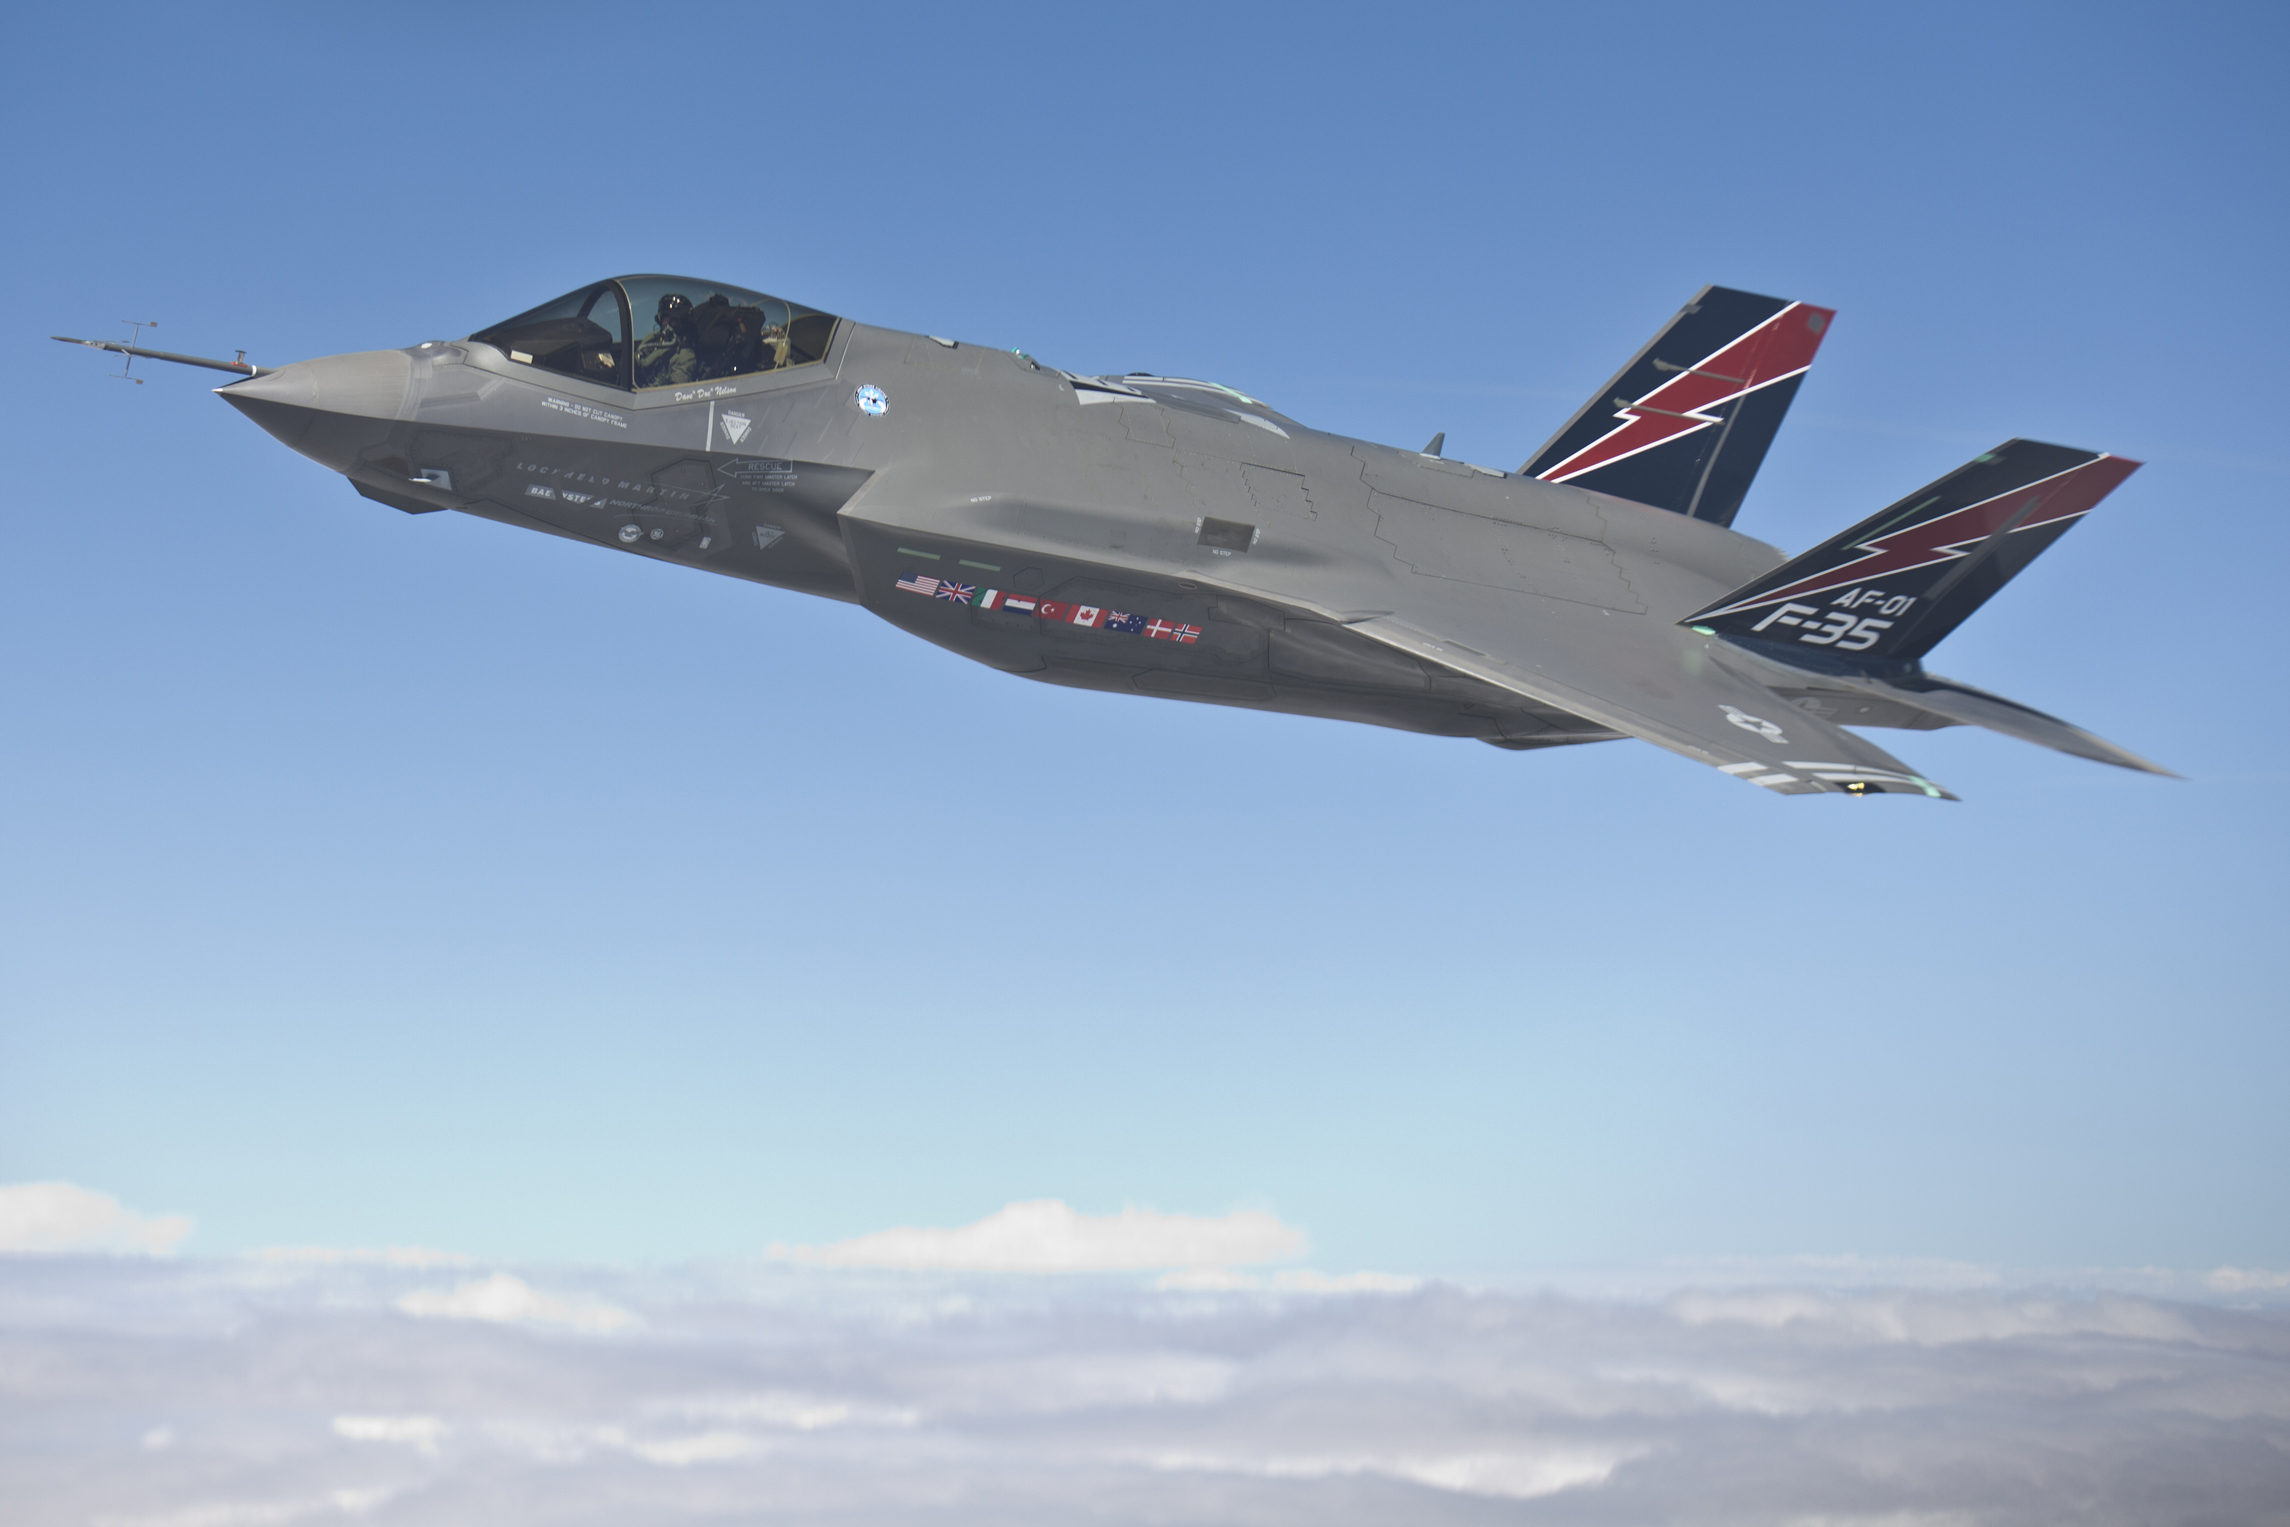 F-35 Fighter Jets Are Finally Combat Ready, Says Air Force